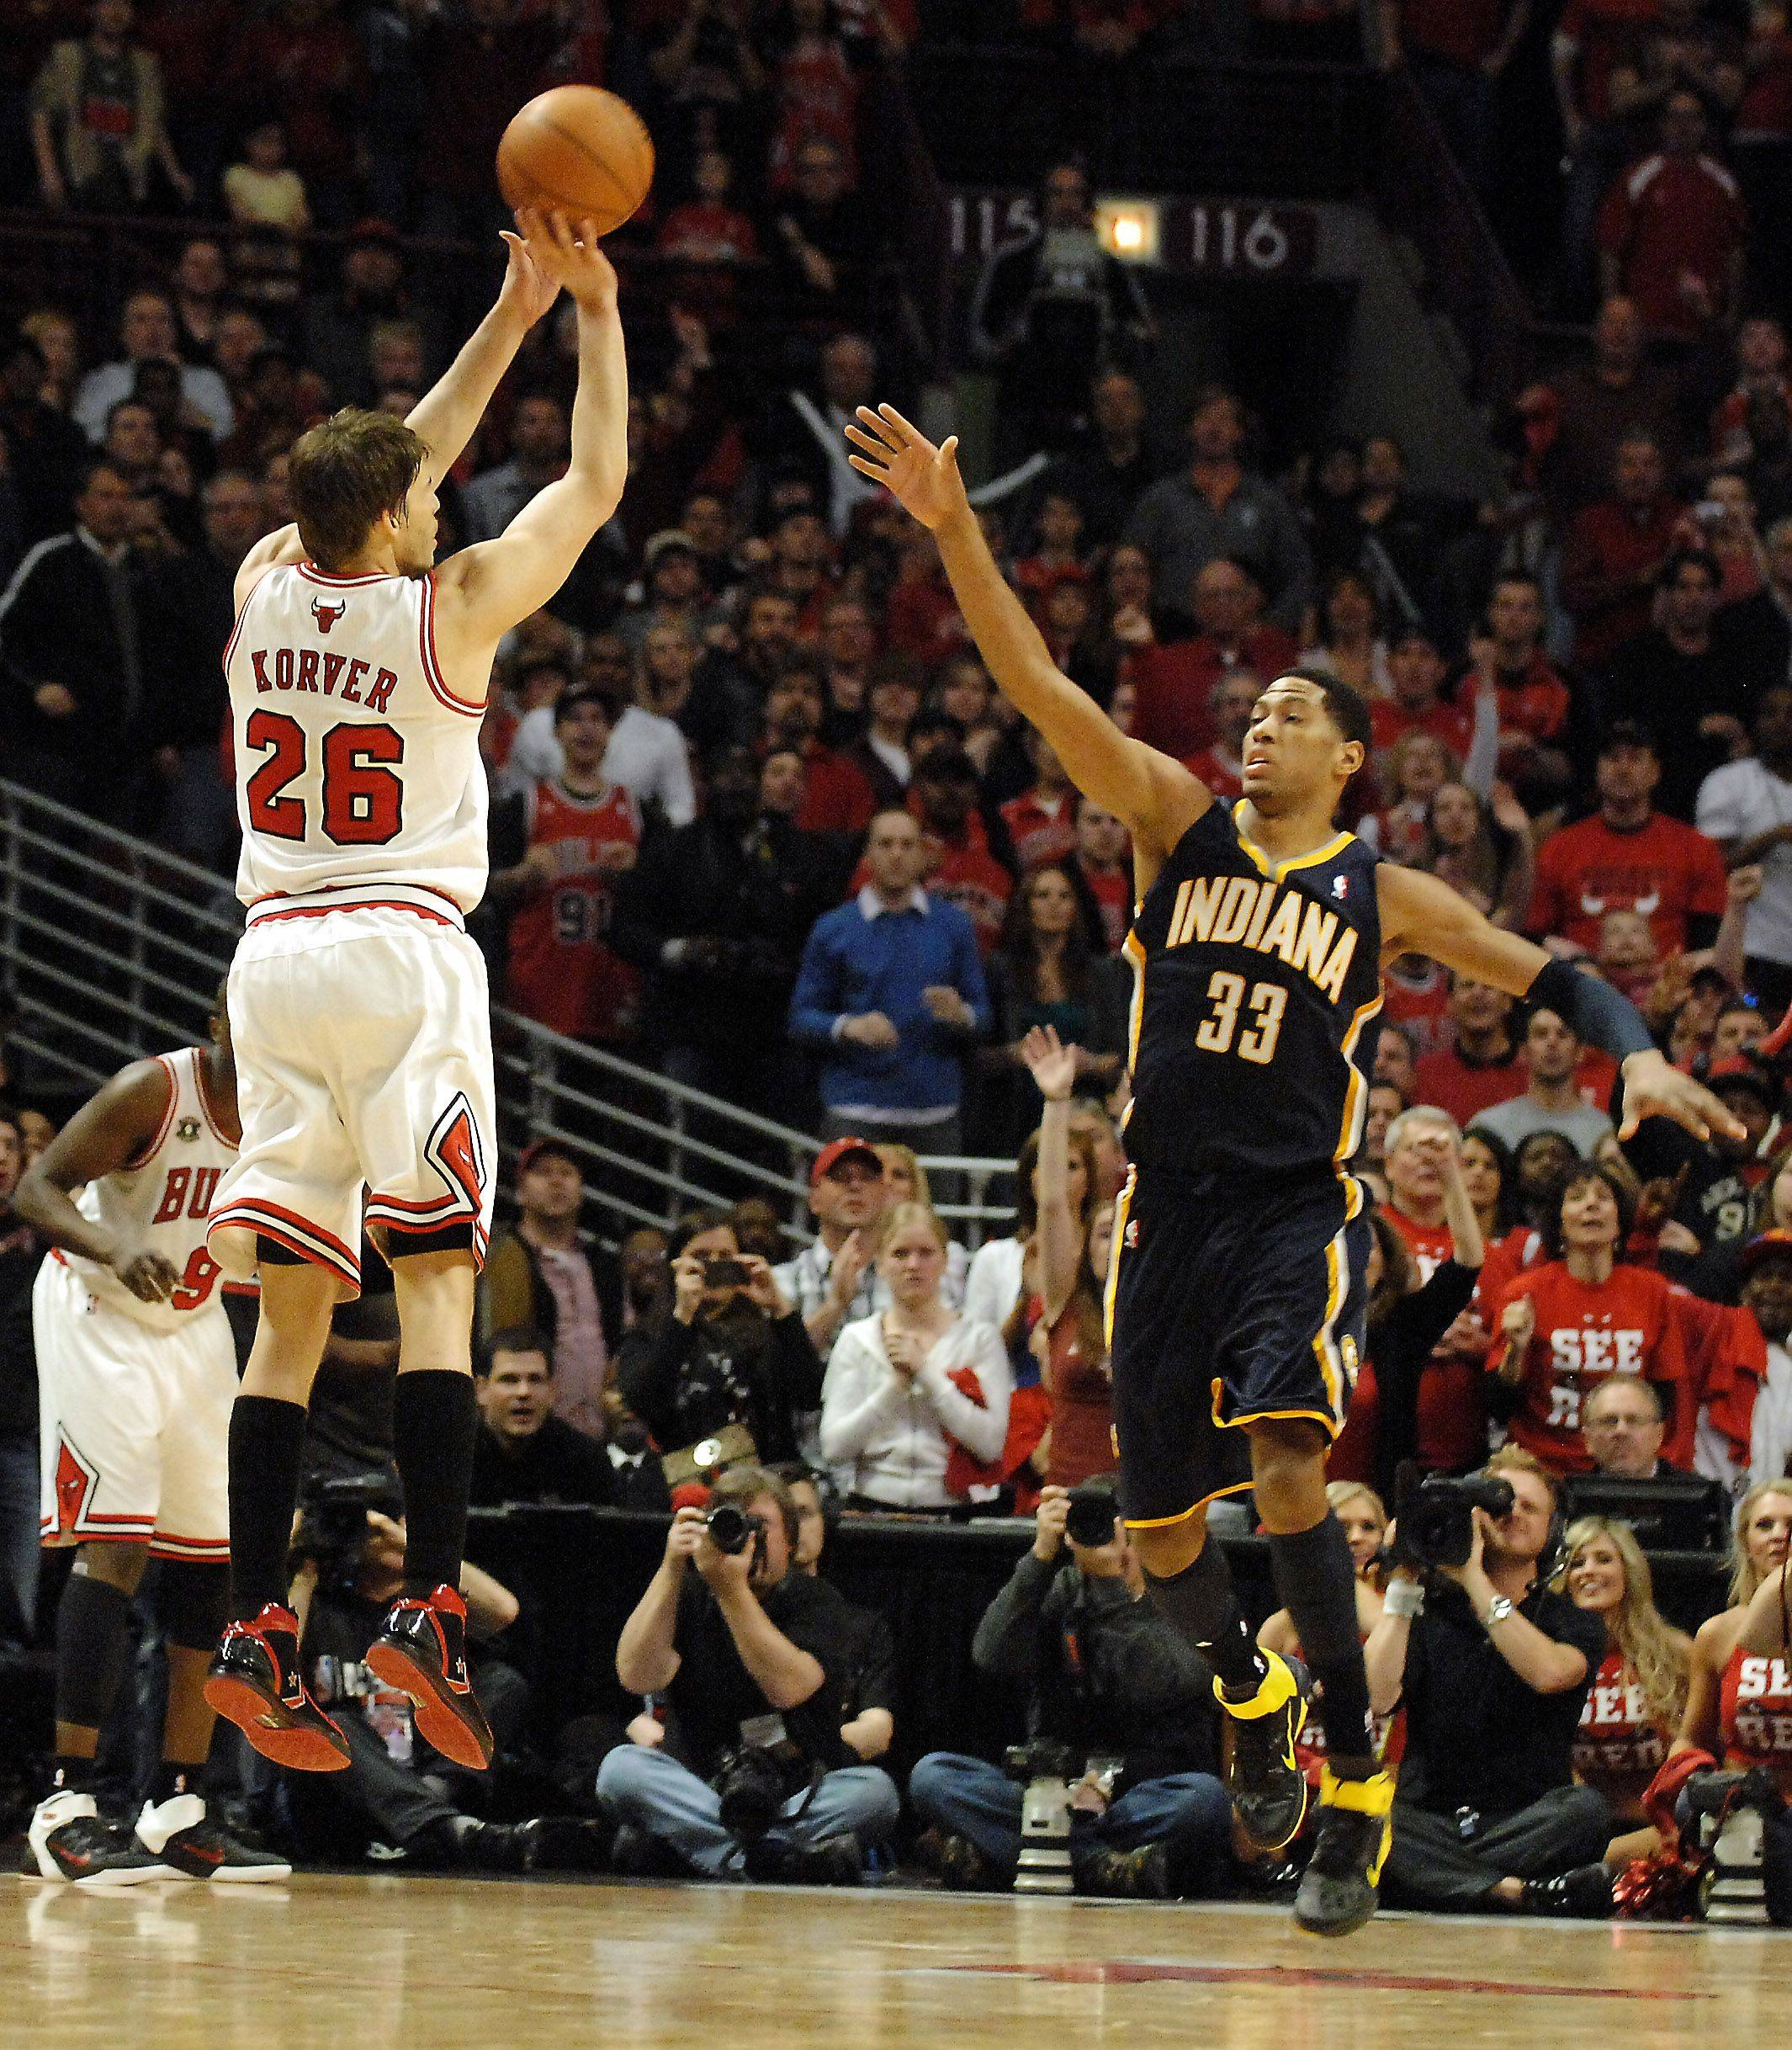 The Bulls' Kyle Korver hits a go-ahead 3-point basket late in the fourth quarter Saturday against the Pacers.